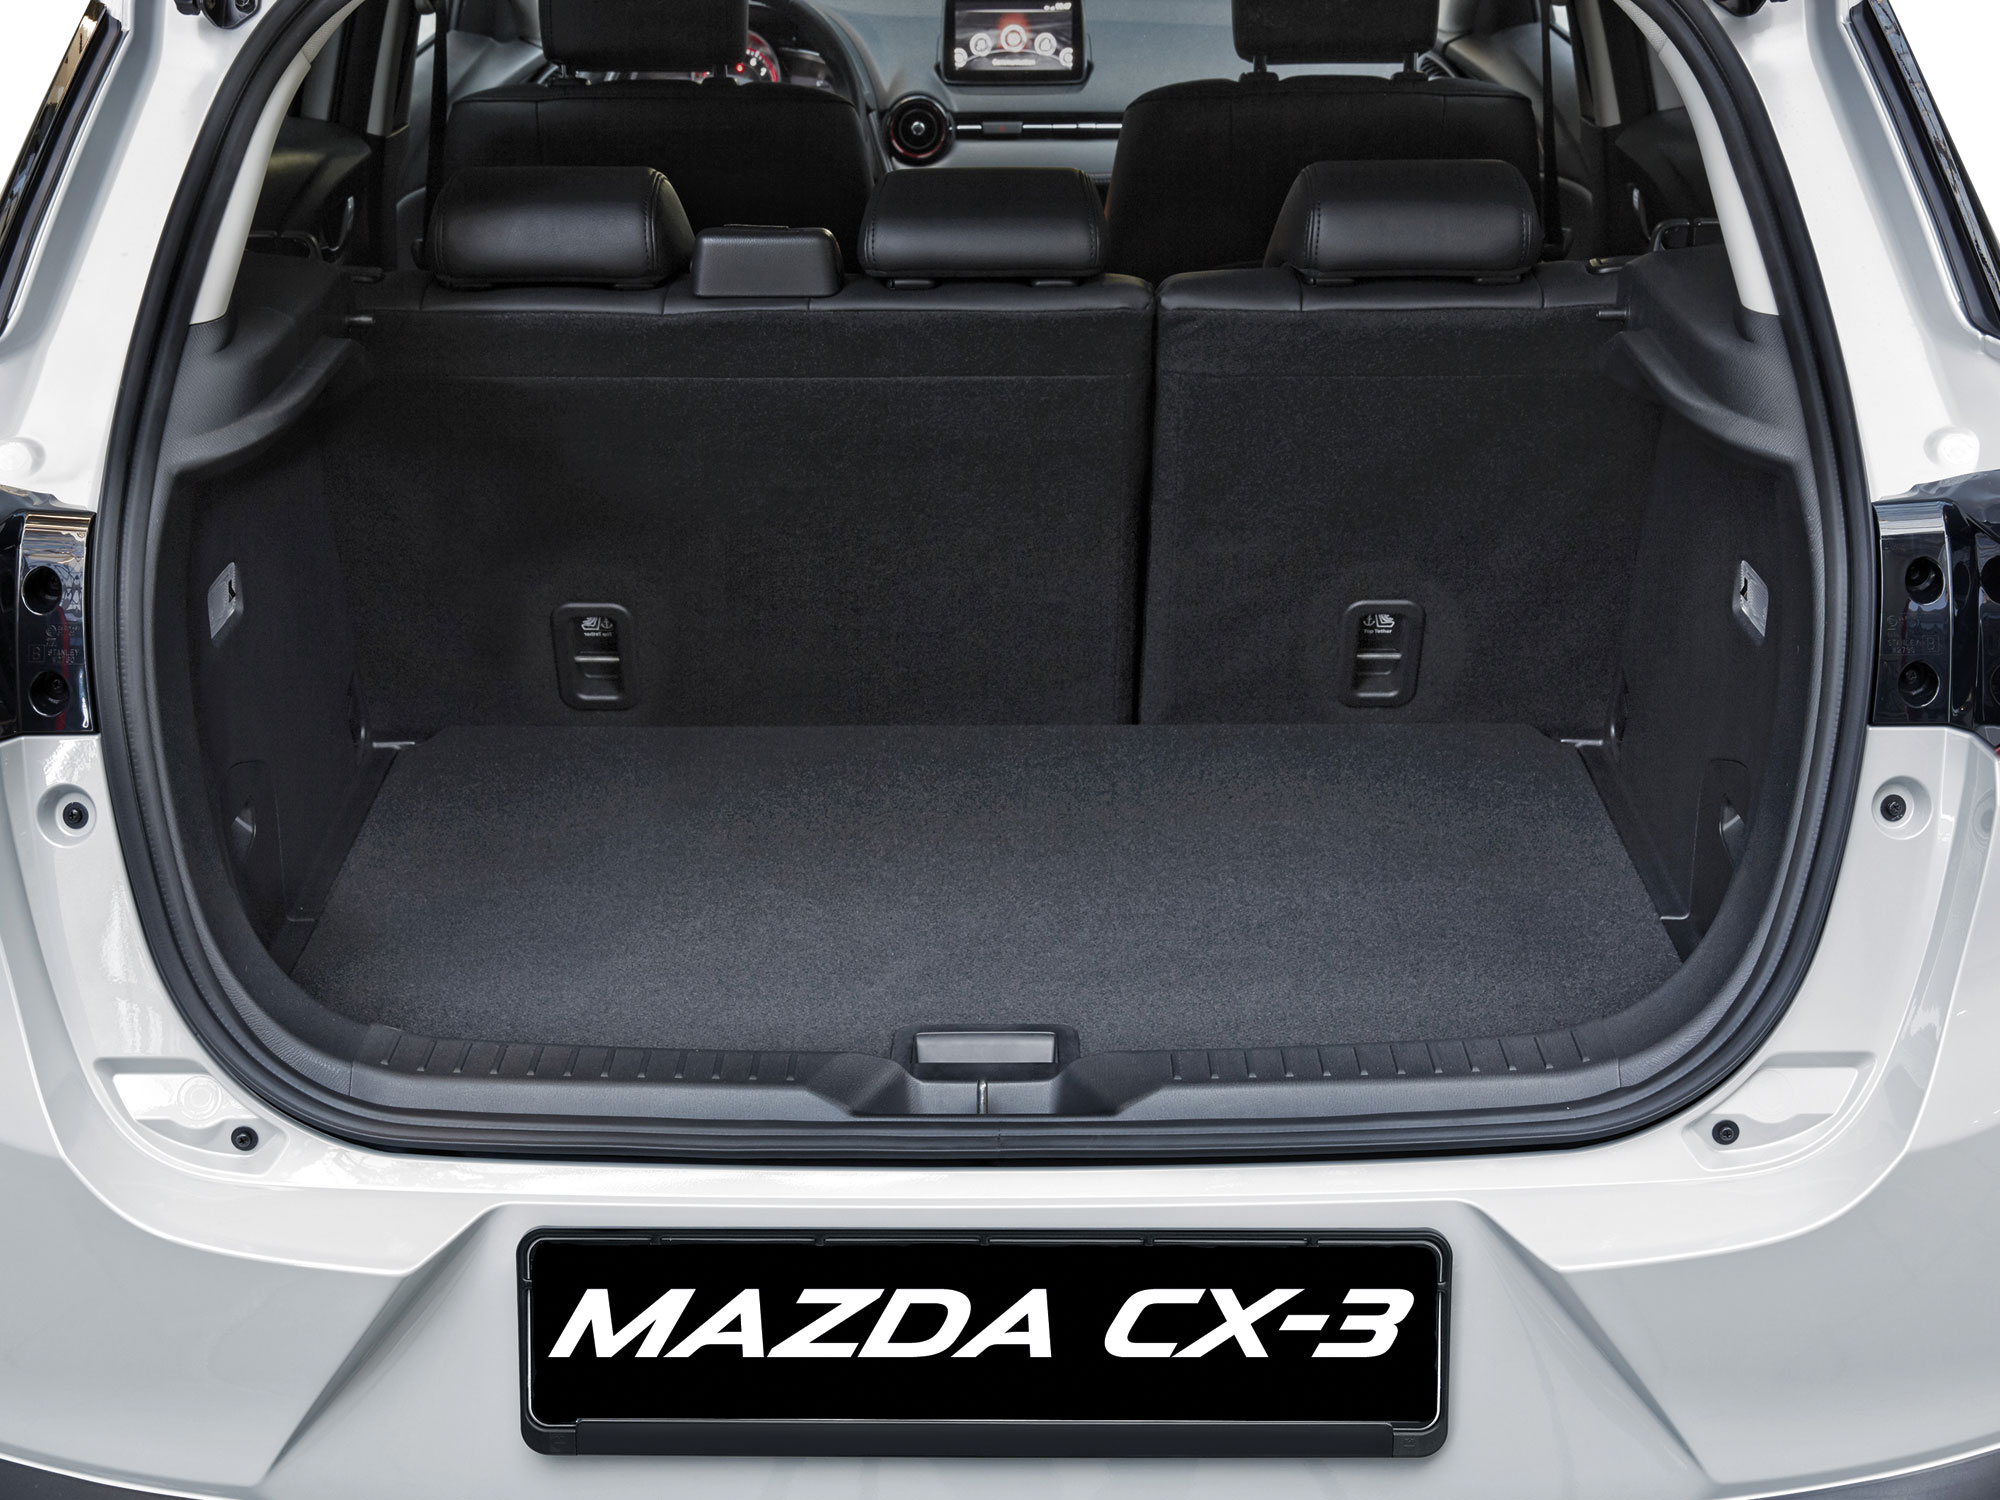 mazda cx 3 kaufen m nchen auto till. Black Bedroom Furniture Sets. Home Design Ideas